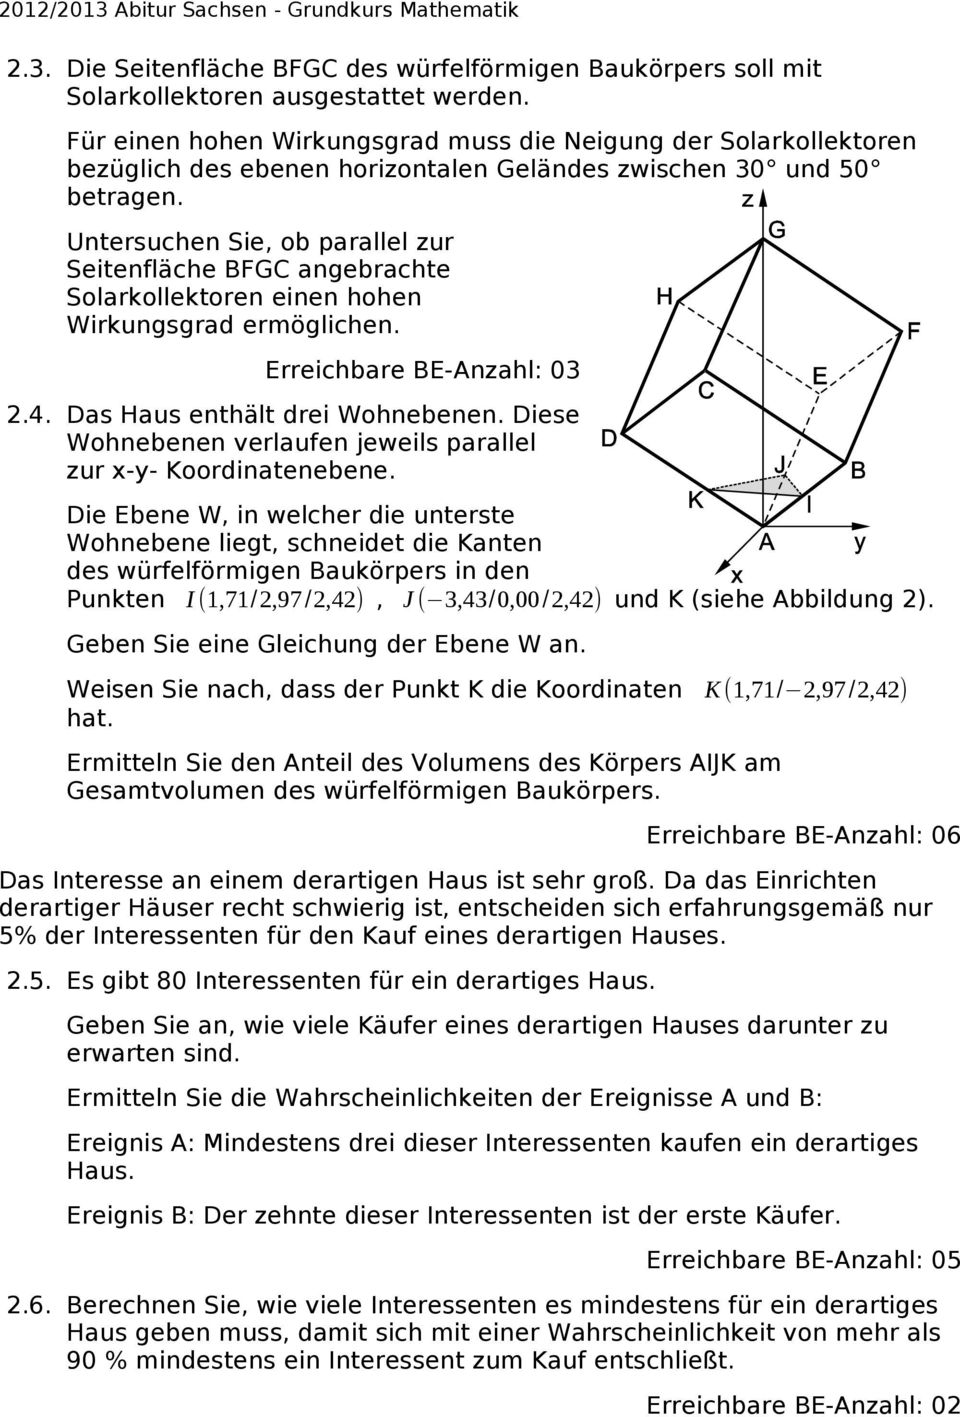 2012 2013 abitur sachsen grundkurs mathematik pdf. Black Bedroom Furniture Sets. Home Design Ideas